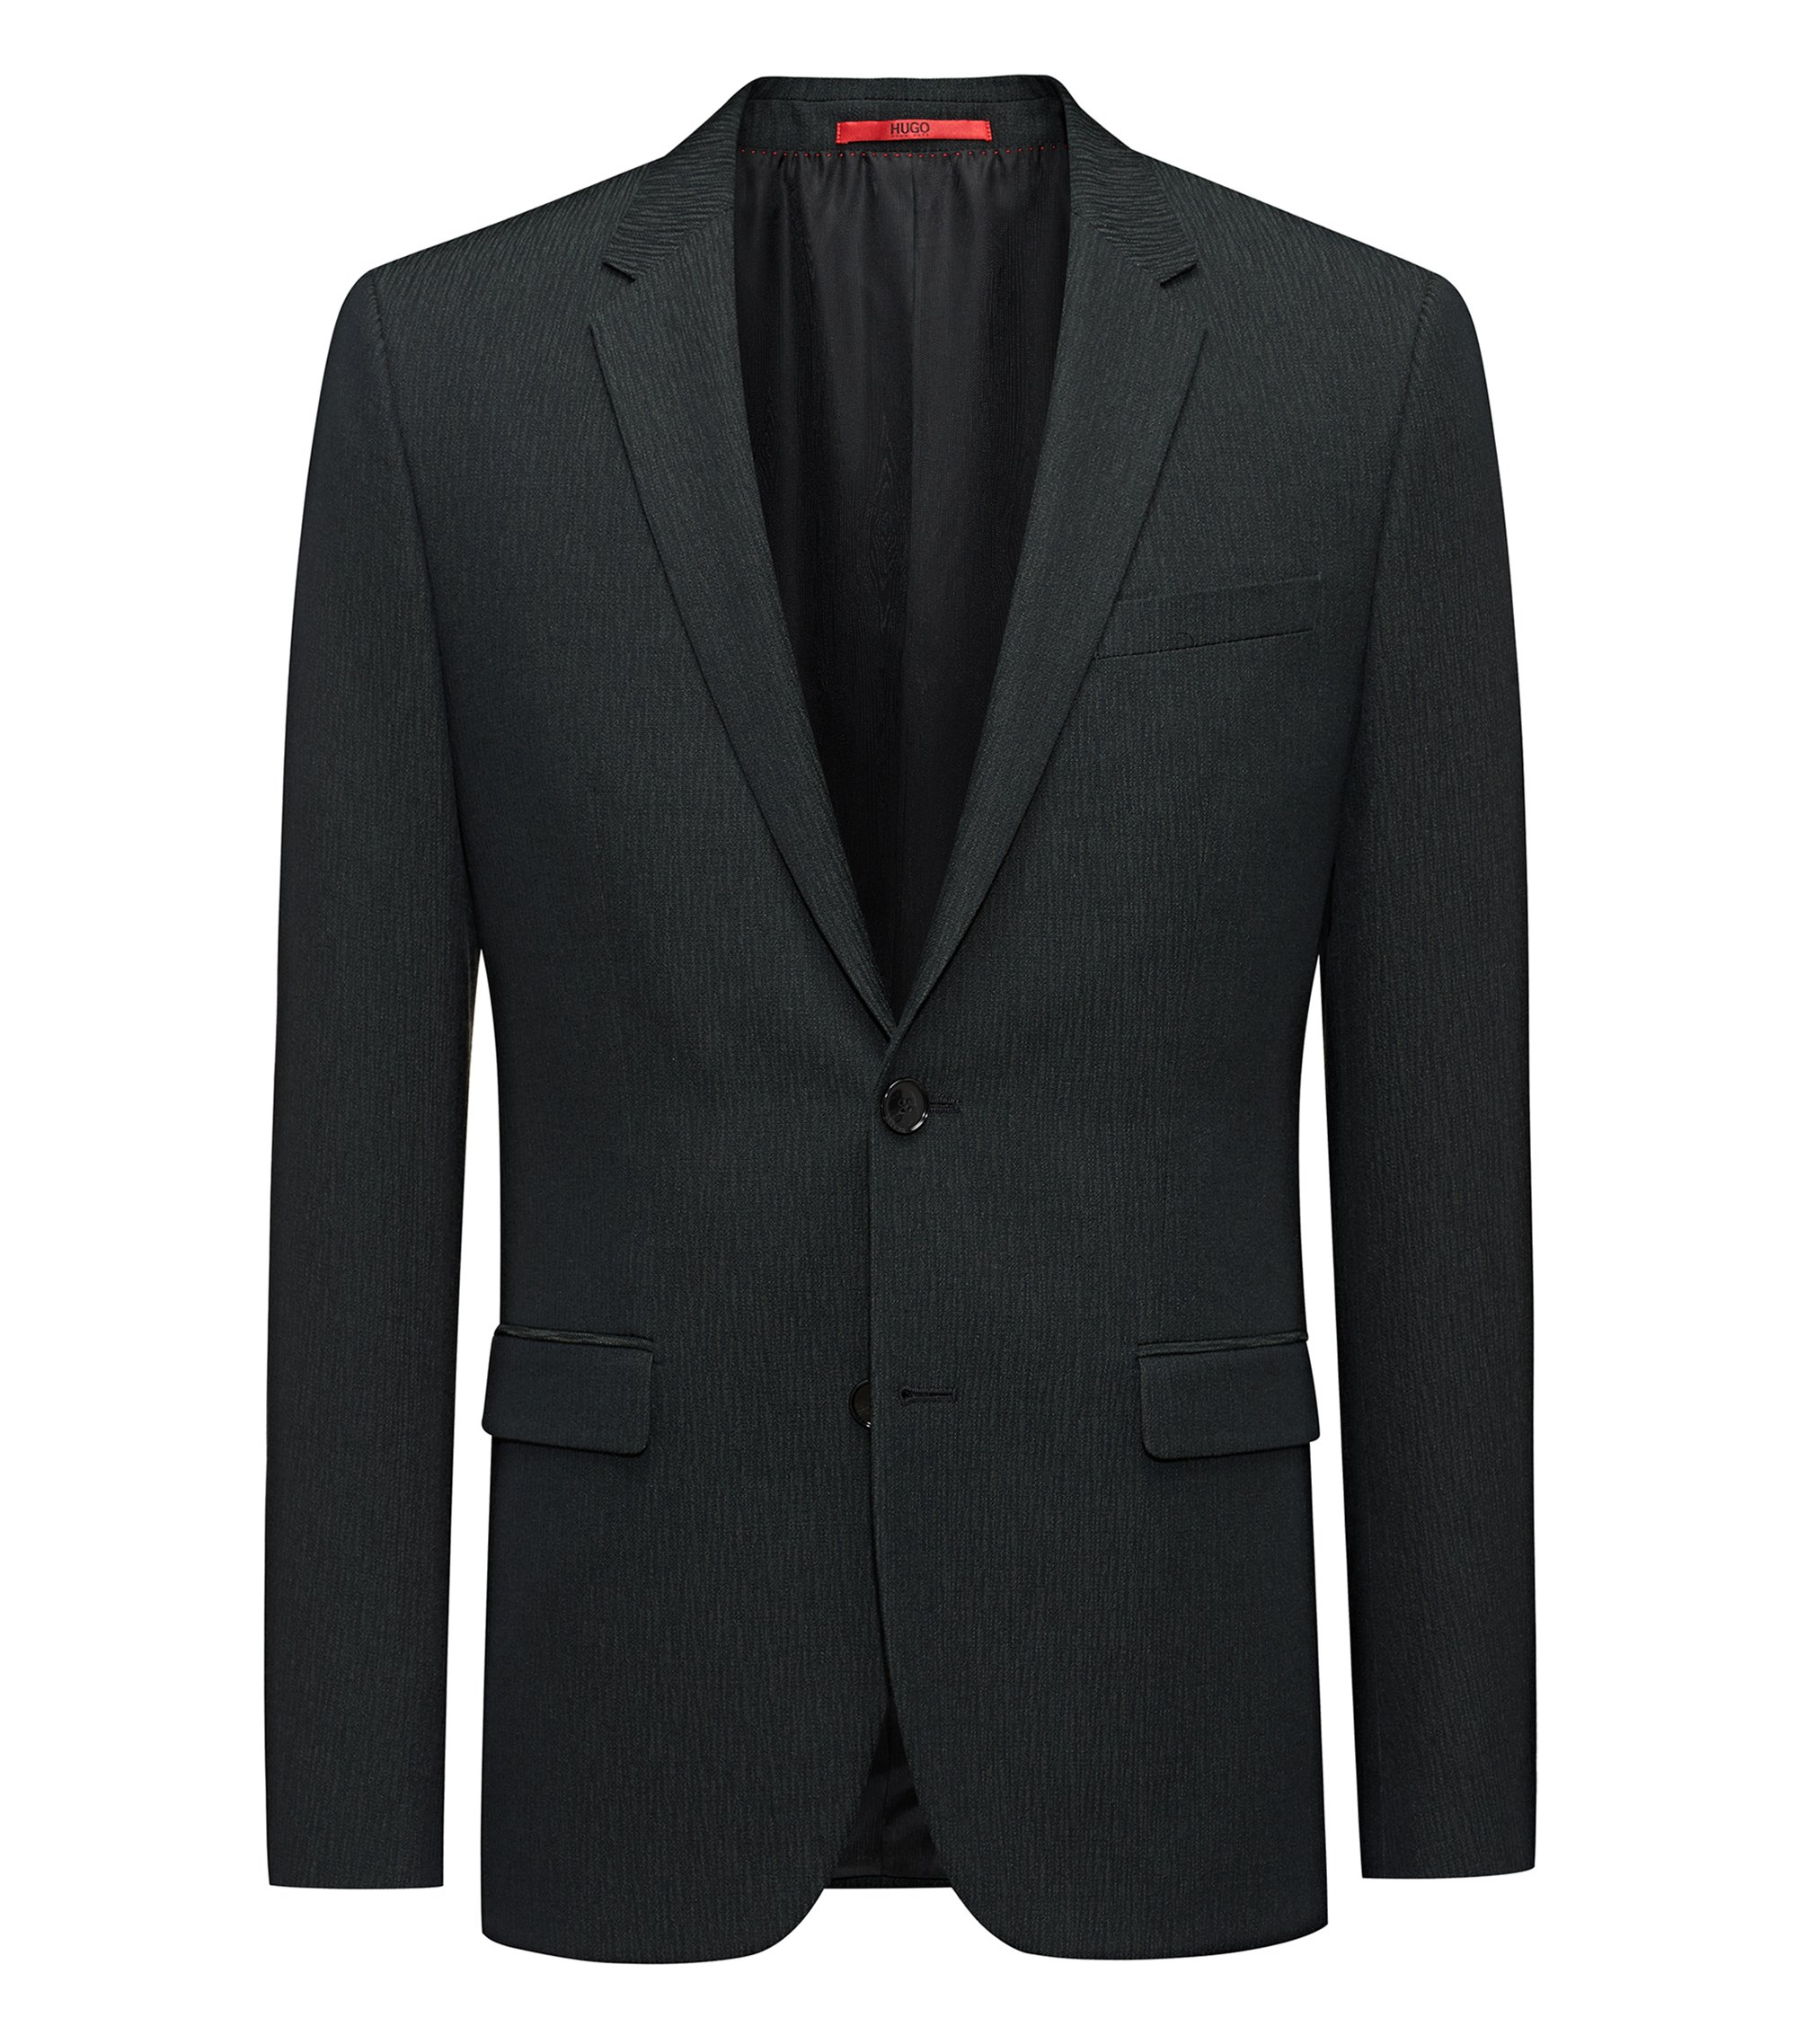 Extra-slim-fit jacket in a structured wool blend, Dark Green